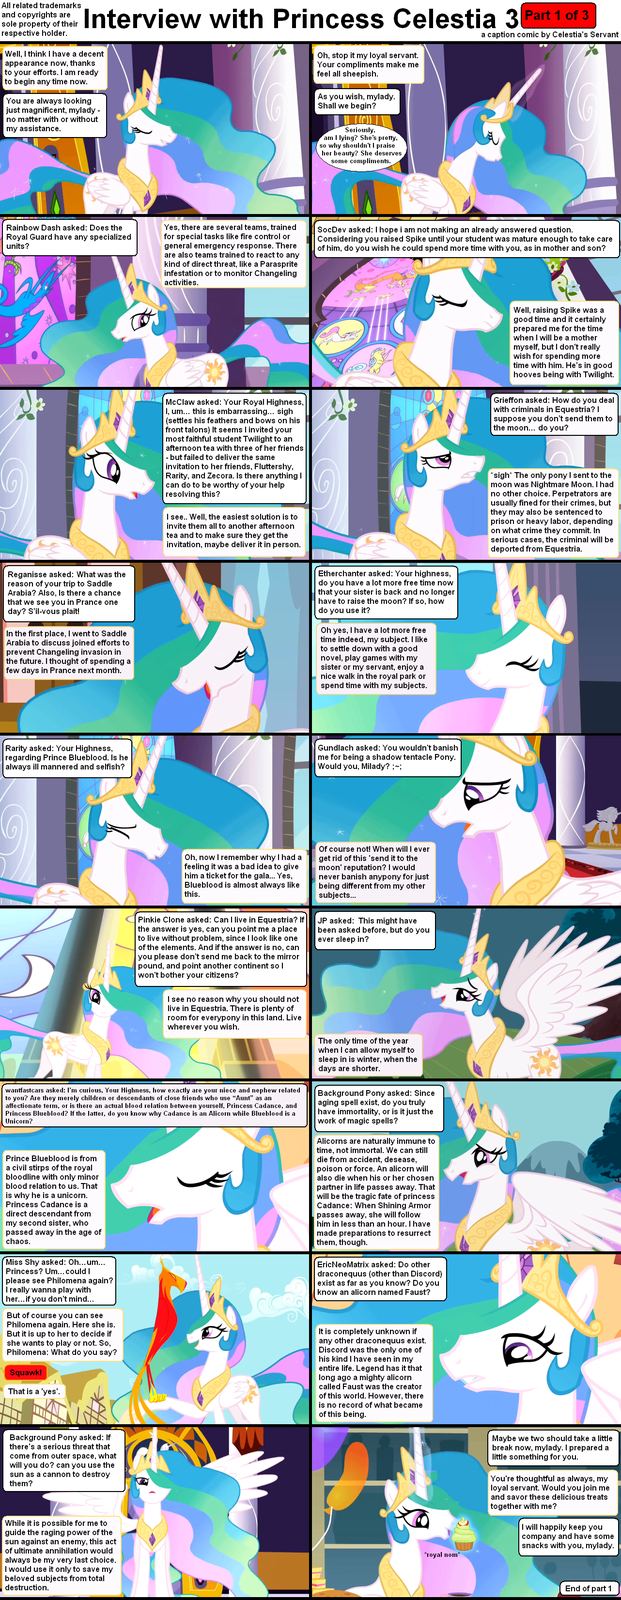 Interview with princess Celestia 3